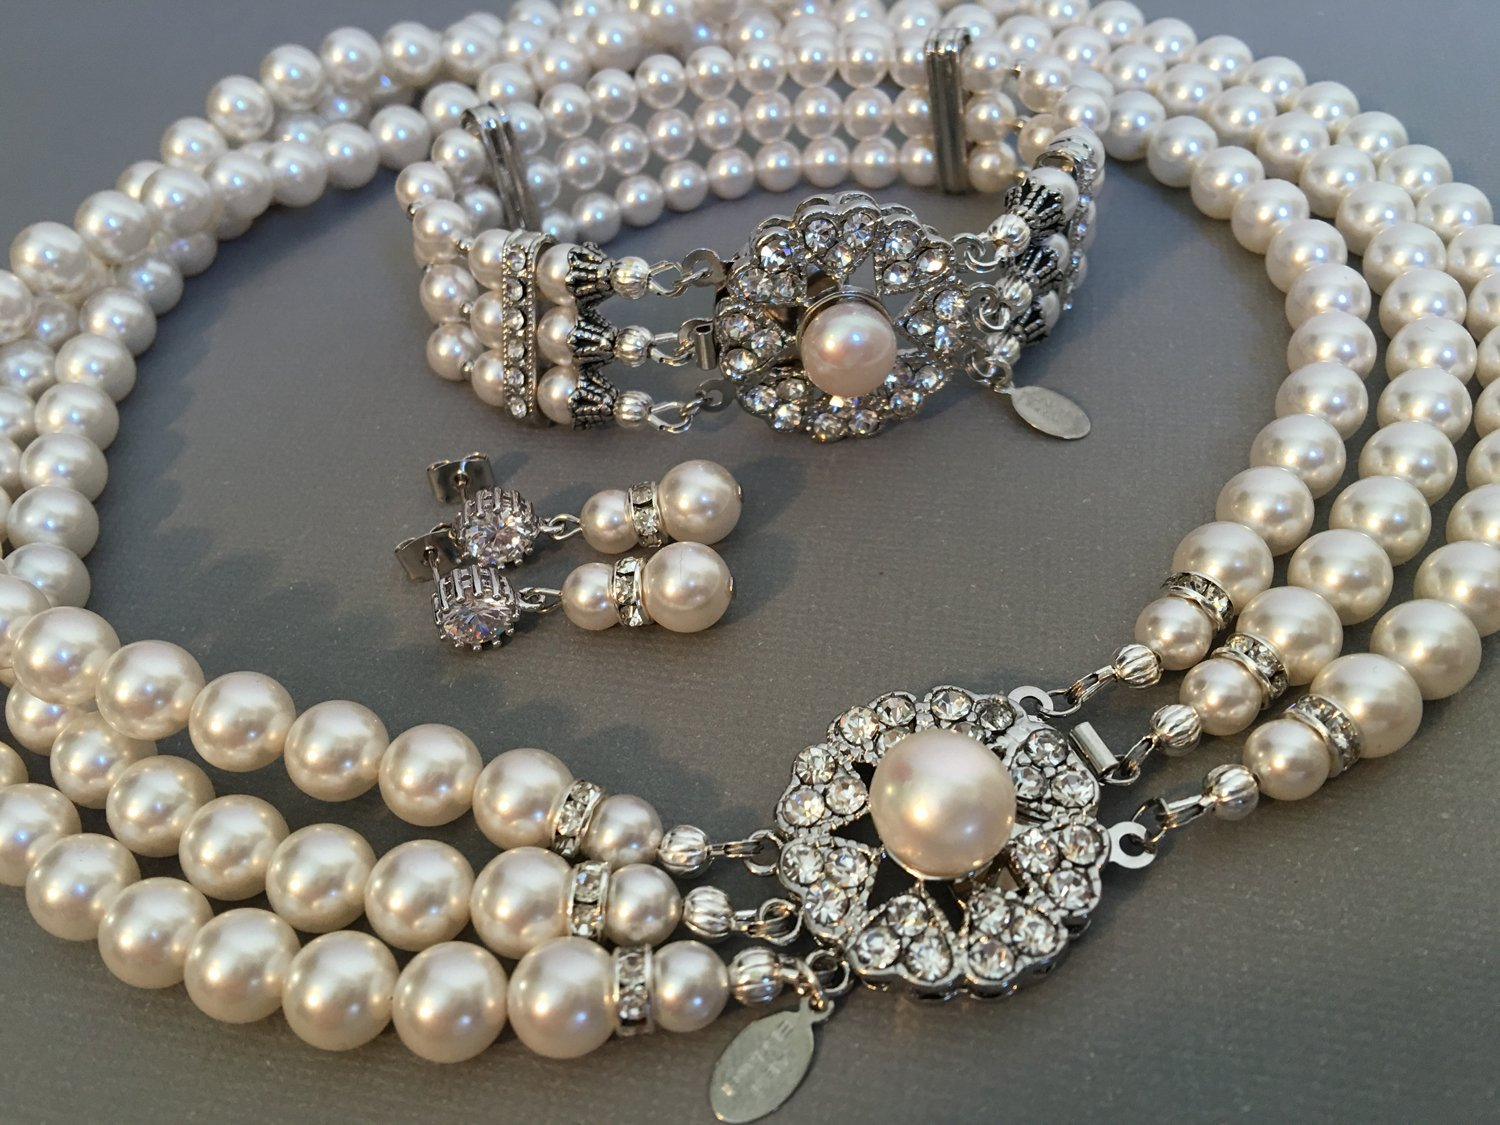 Complete Jewelry Set with Classic Pearl Necklace Bracelet Earrings in a Vintage style like Jackie O Fancy Rhinestone Clasp 3 multi strands Swarovski pearls White or Ivory by Alexi Blackwell Bridal by Alexi Blackwell Bridal